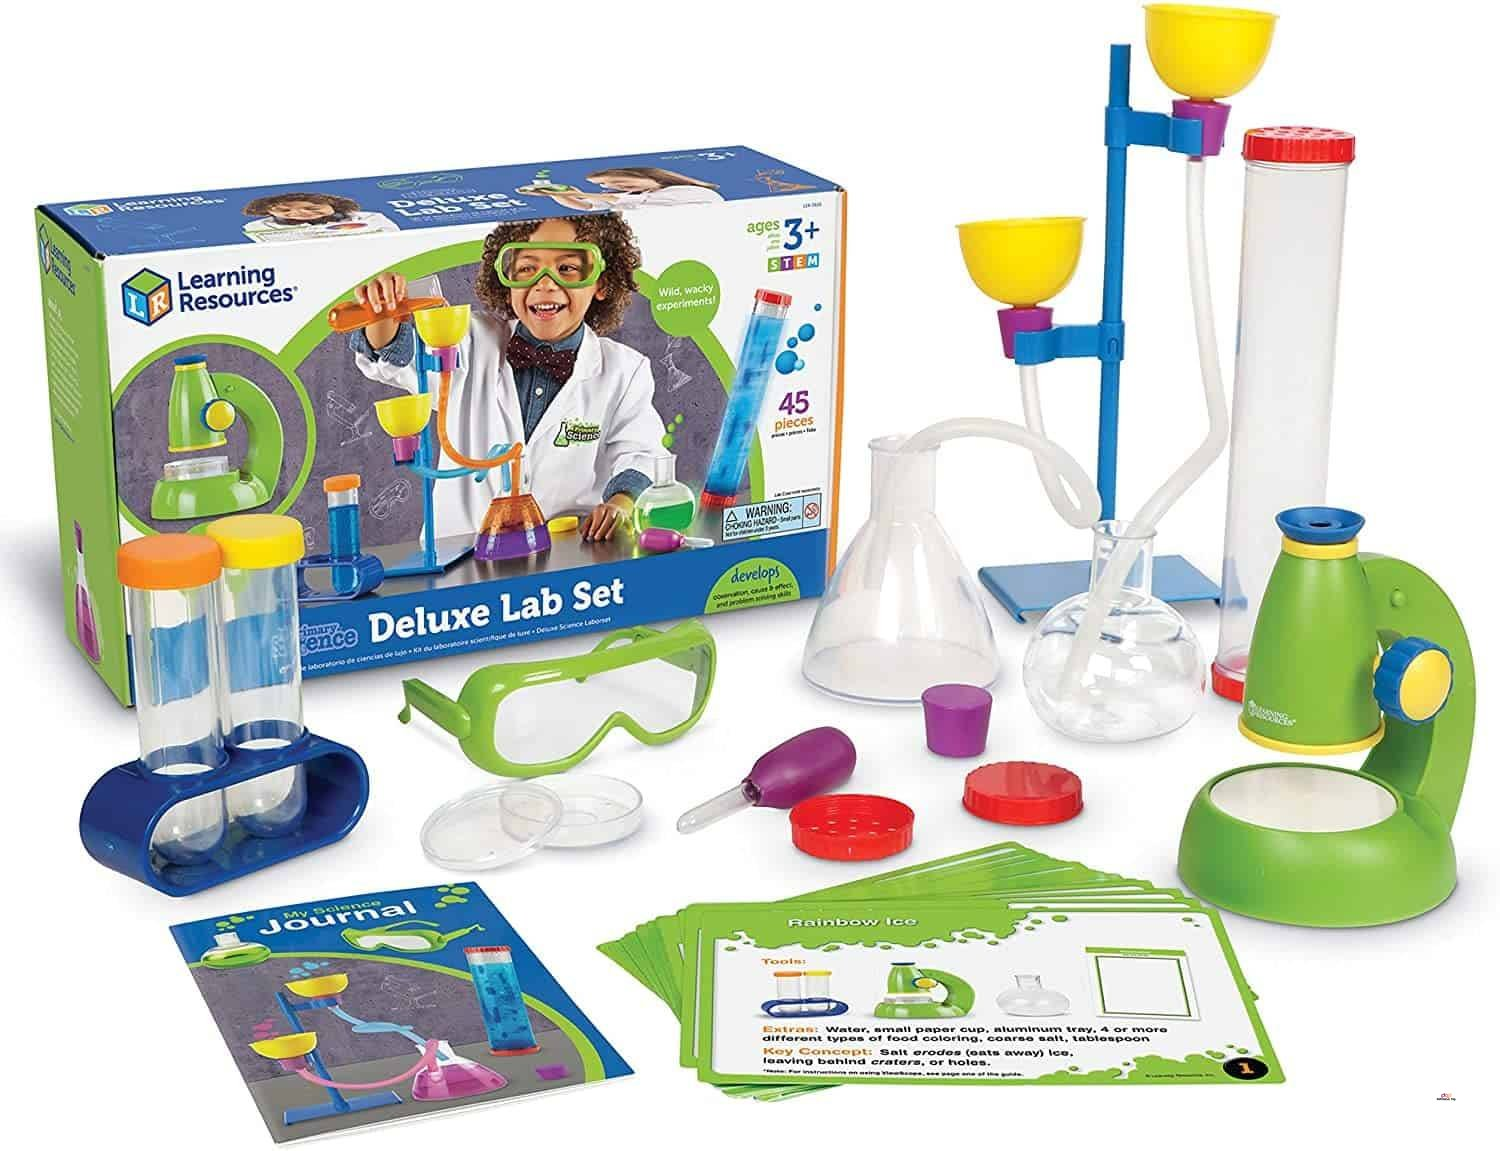 Product image of Learning Resources Wow & Wonder STEM Science Set